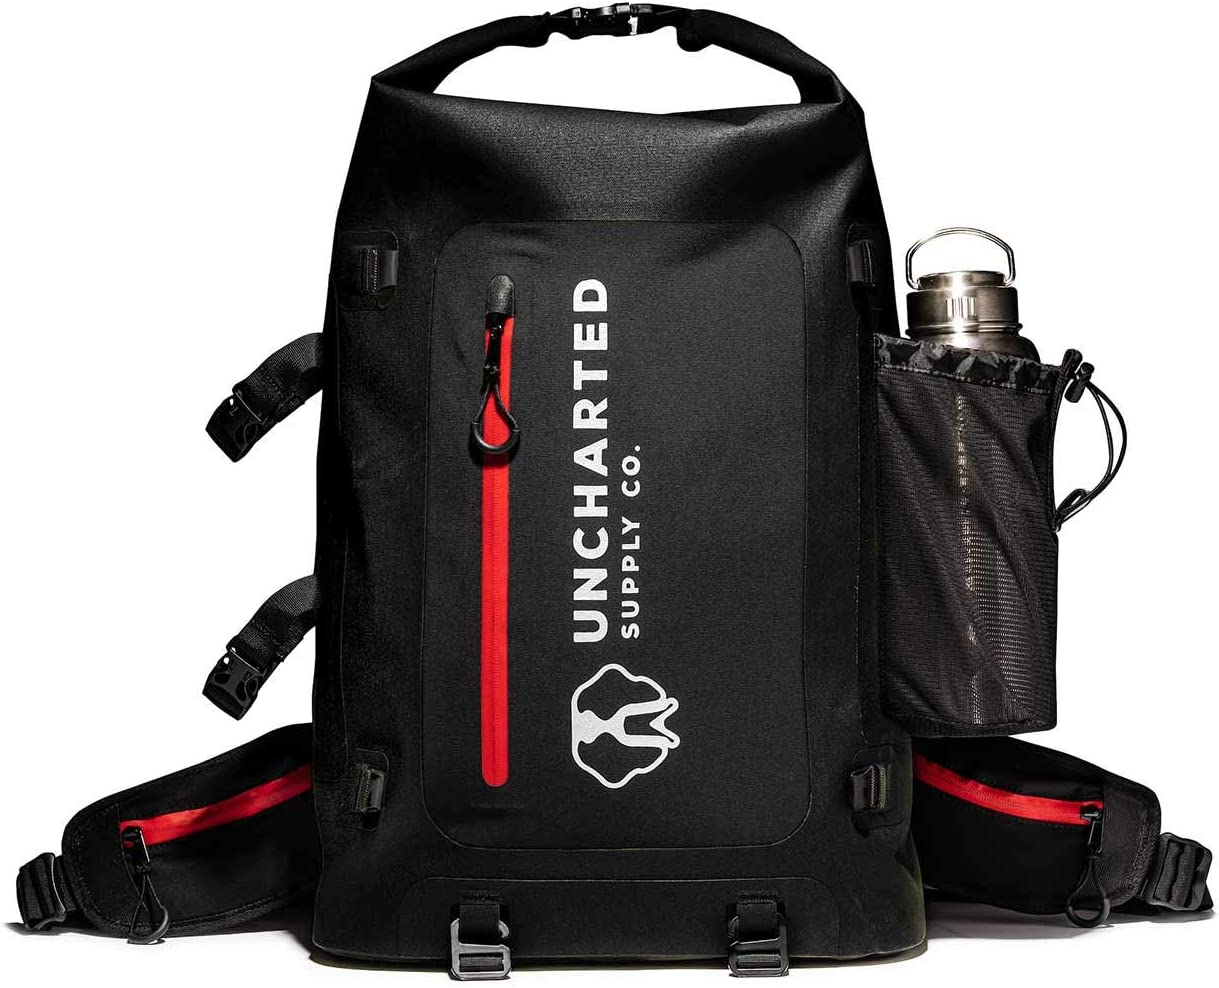 Uncharted Supply Co The Seventy2 Pro 2-Person Survival System - 72 Hour Emergency Preparedness Kit - Ideal for Your Car, Home, Survival Readiness, and Camping